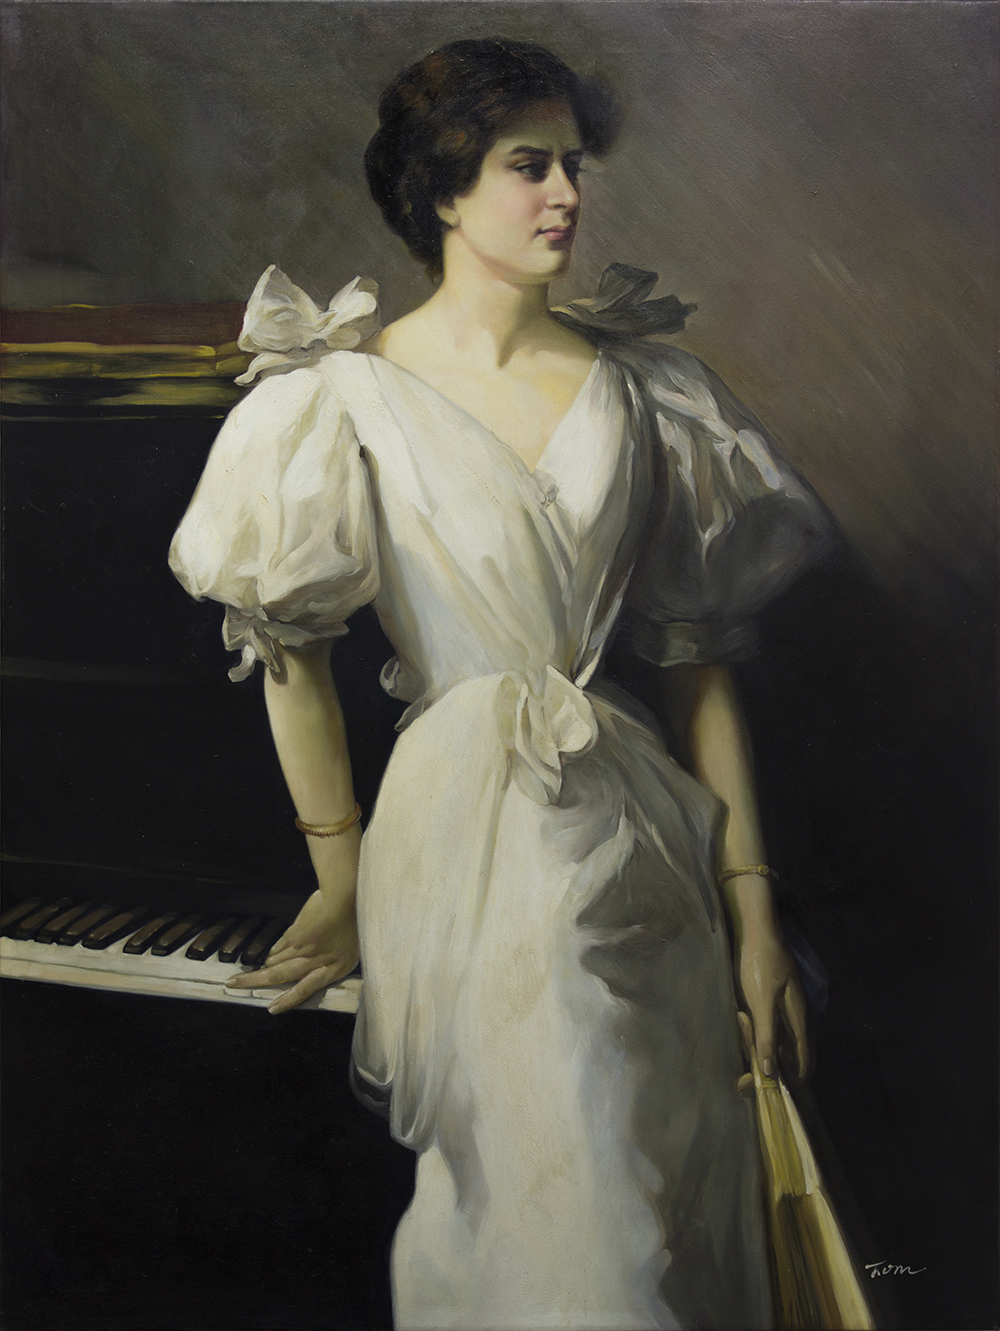 john-singer-sargent-caterina-vlasto-catherine-1897-oil-on-canvas-master-study-web.jpg